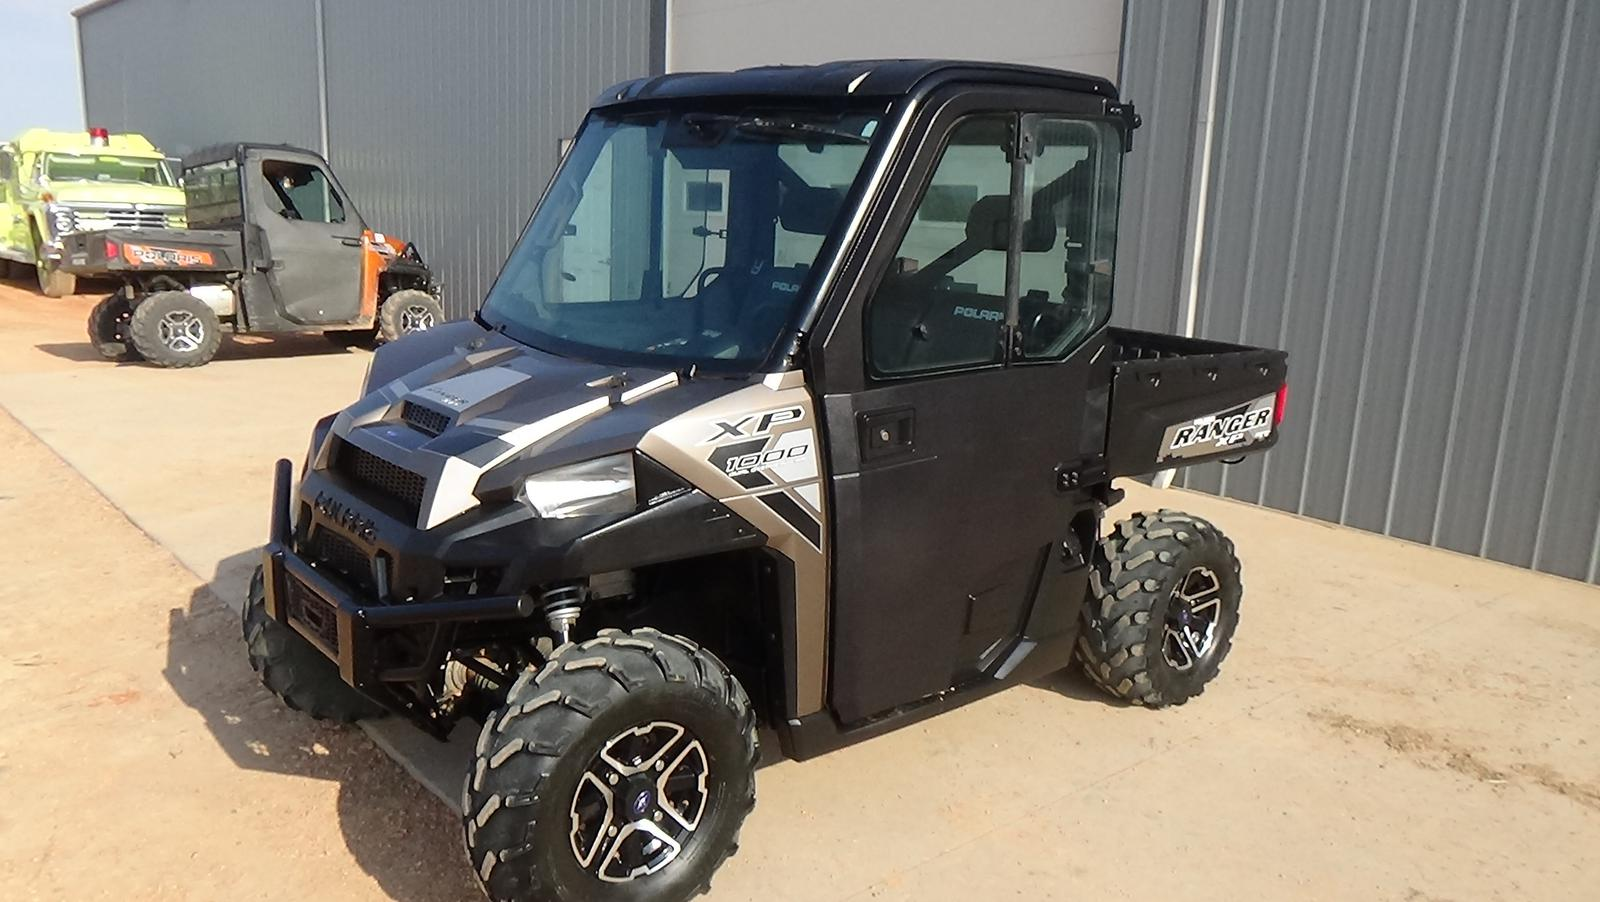 2017 polaris industries ranger xp� 1000 eps nara bronze